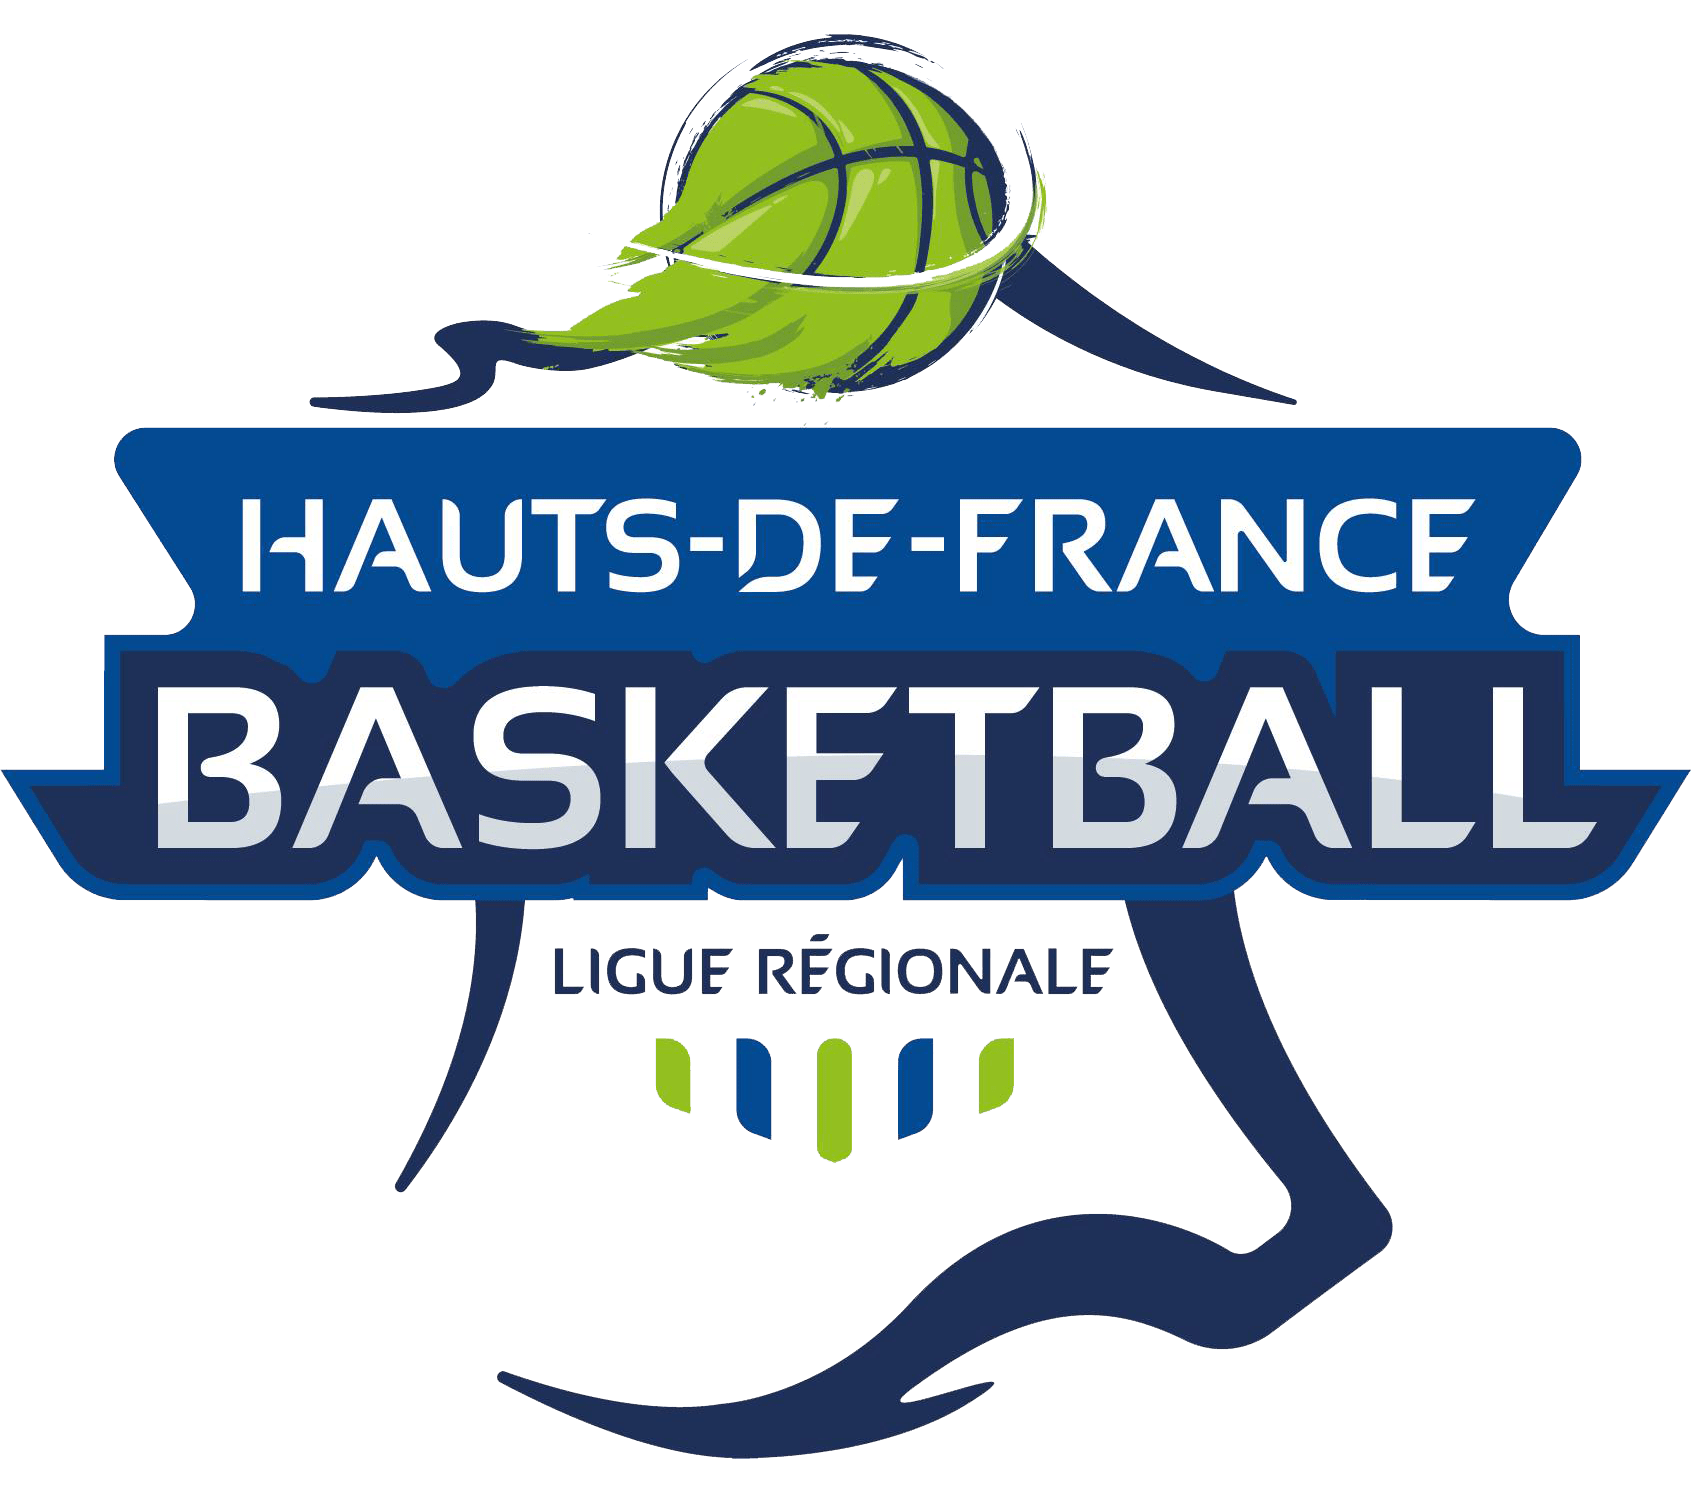 Hauts de France BasketBall Ligue Regionale